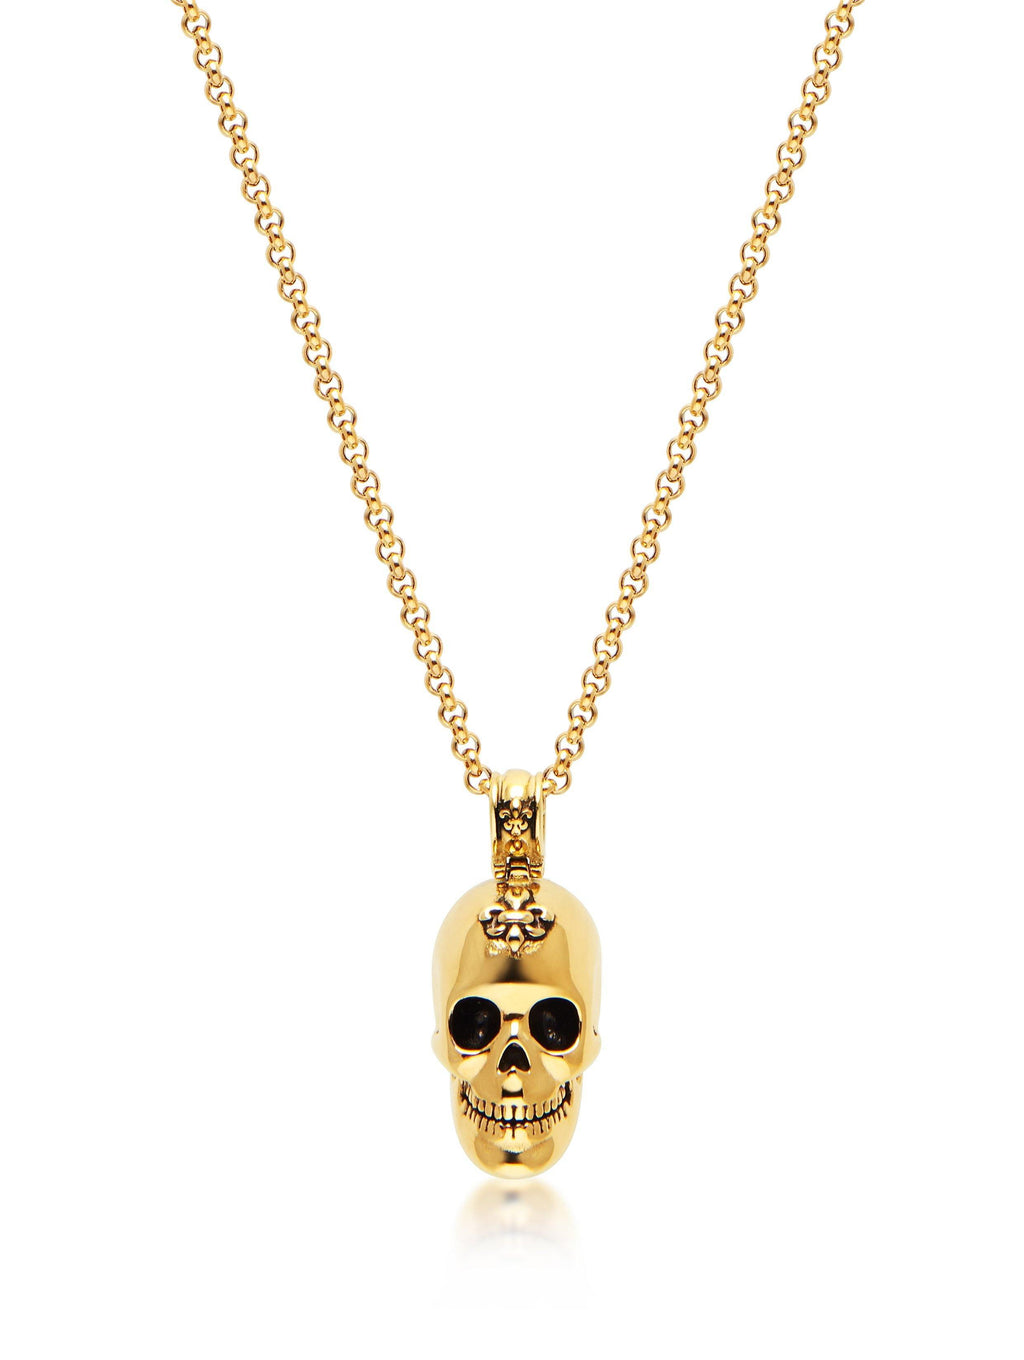 Men's Necklace with Gold Skull